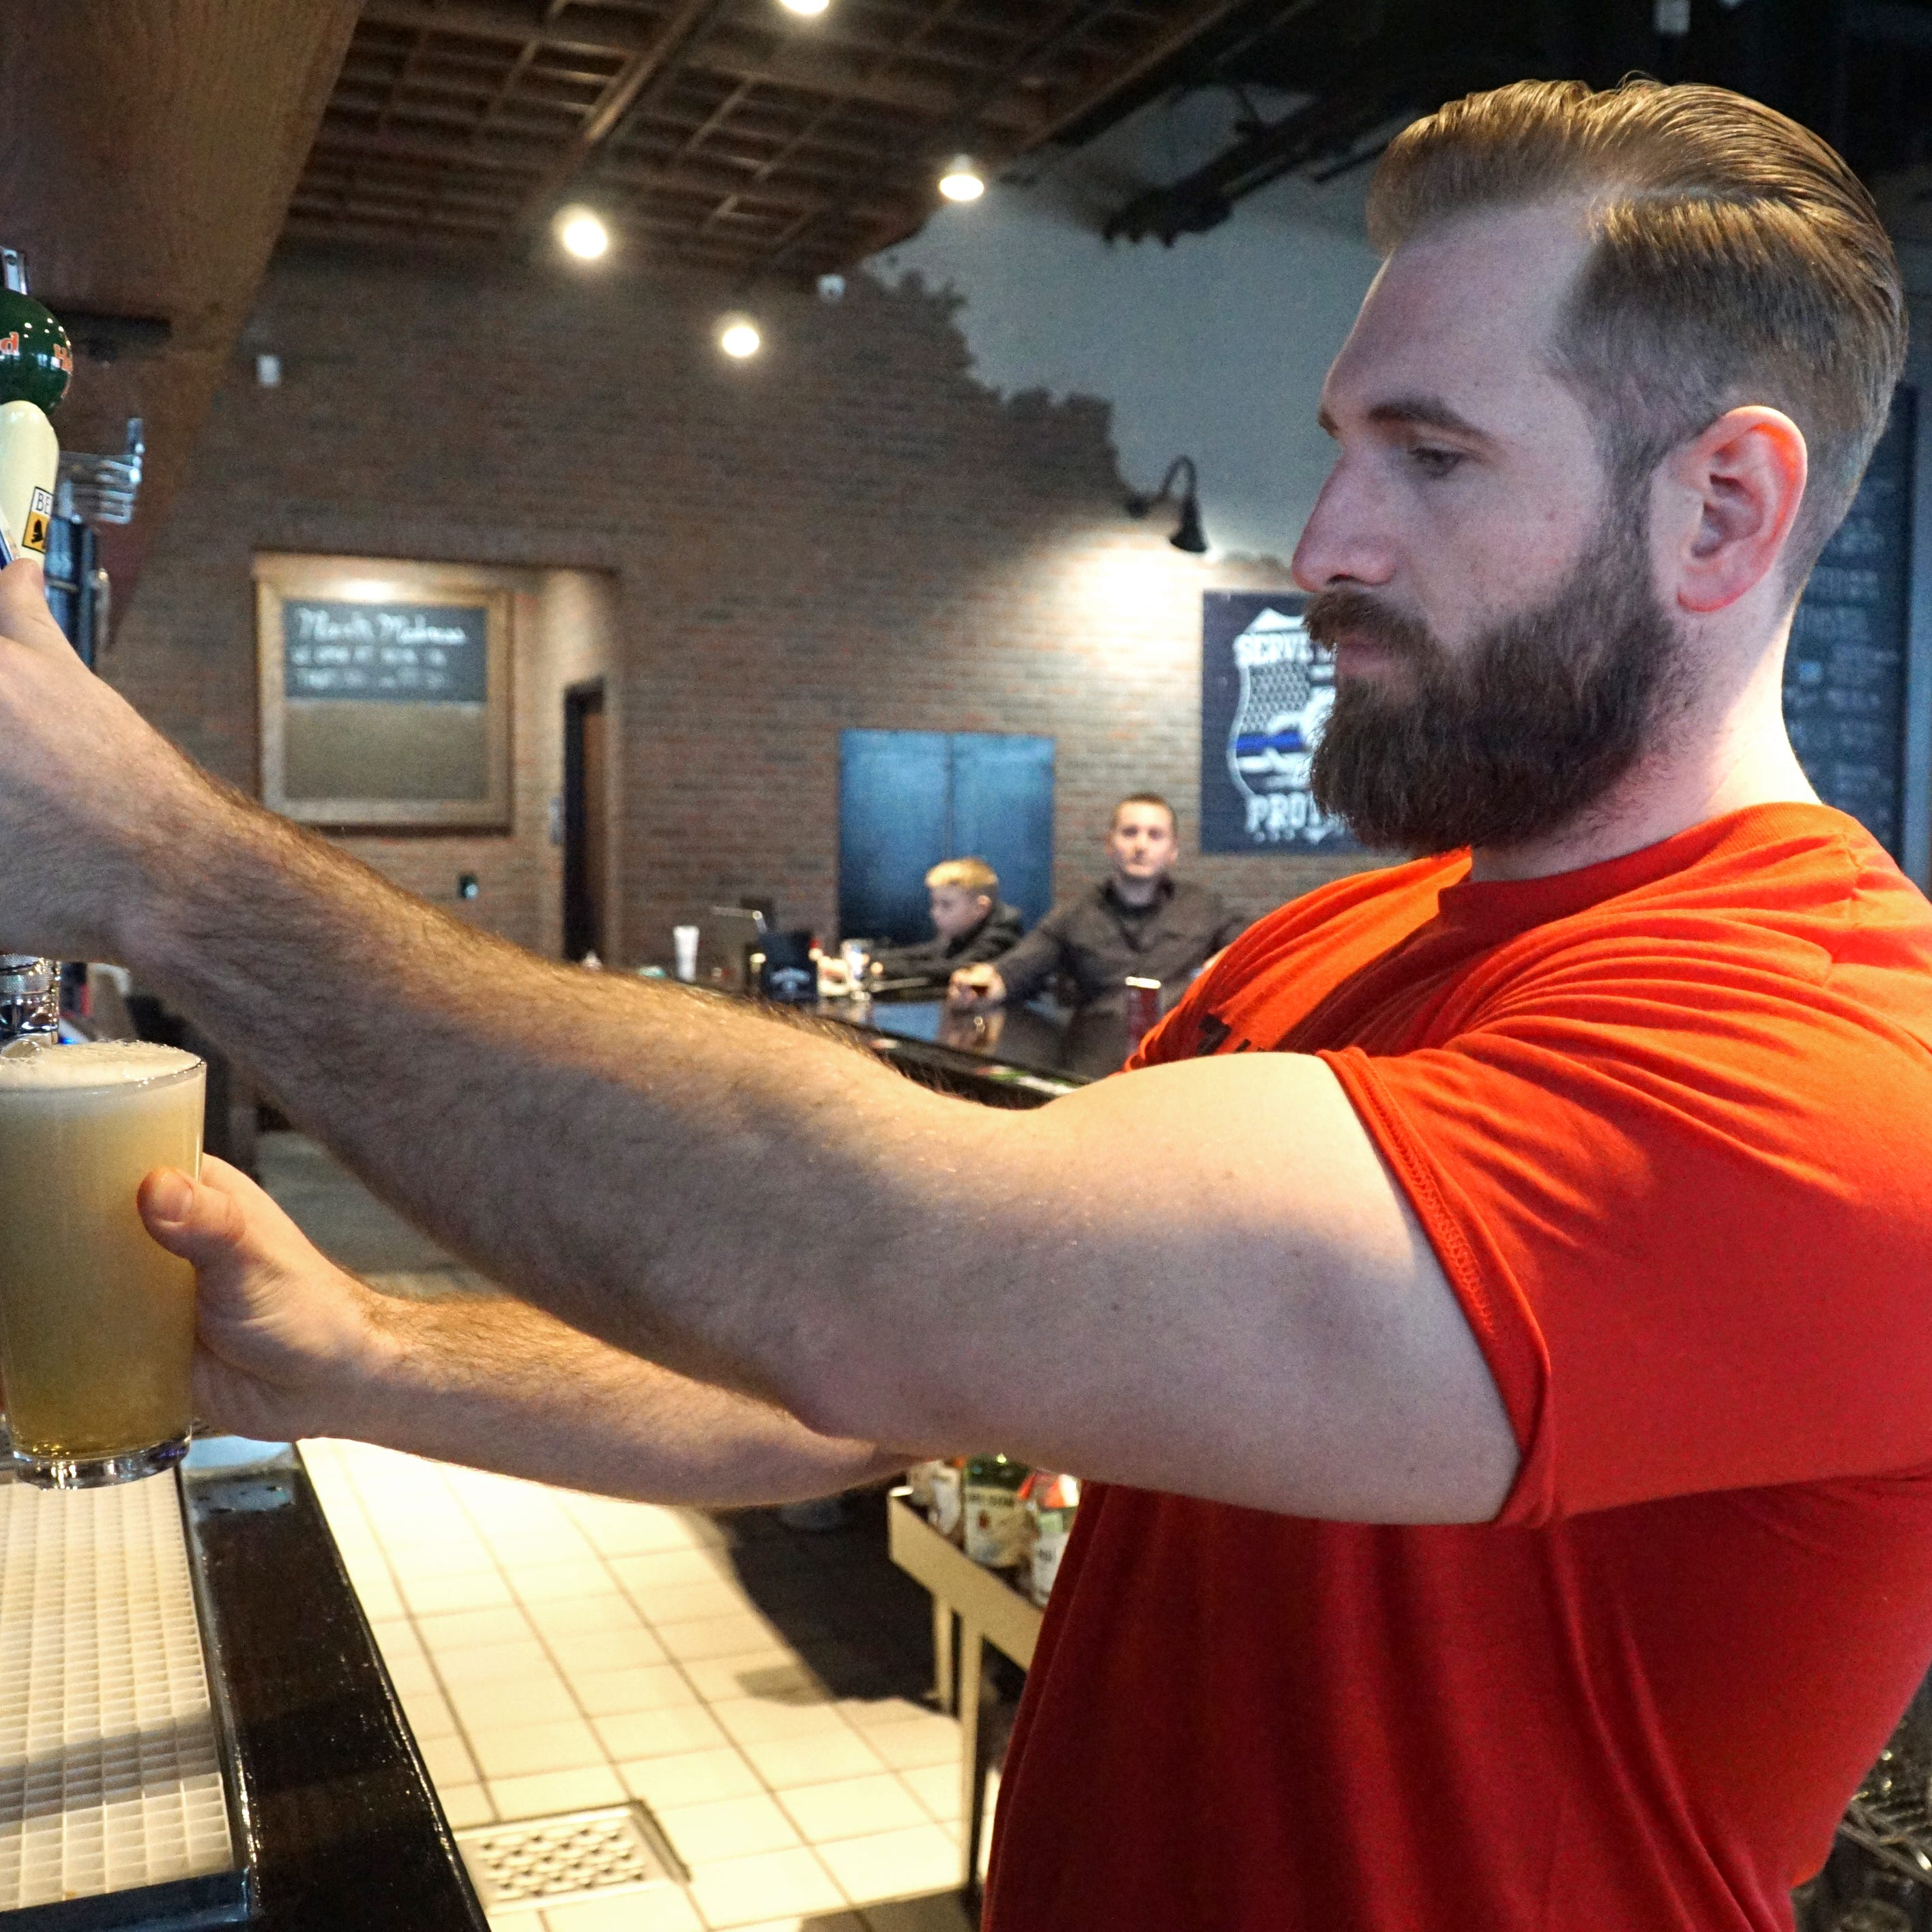 Cheers! 5th Avenue in Novi opens under new ownership